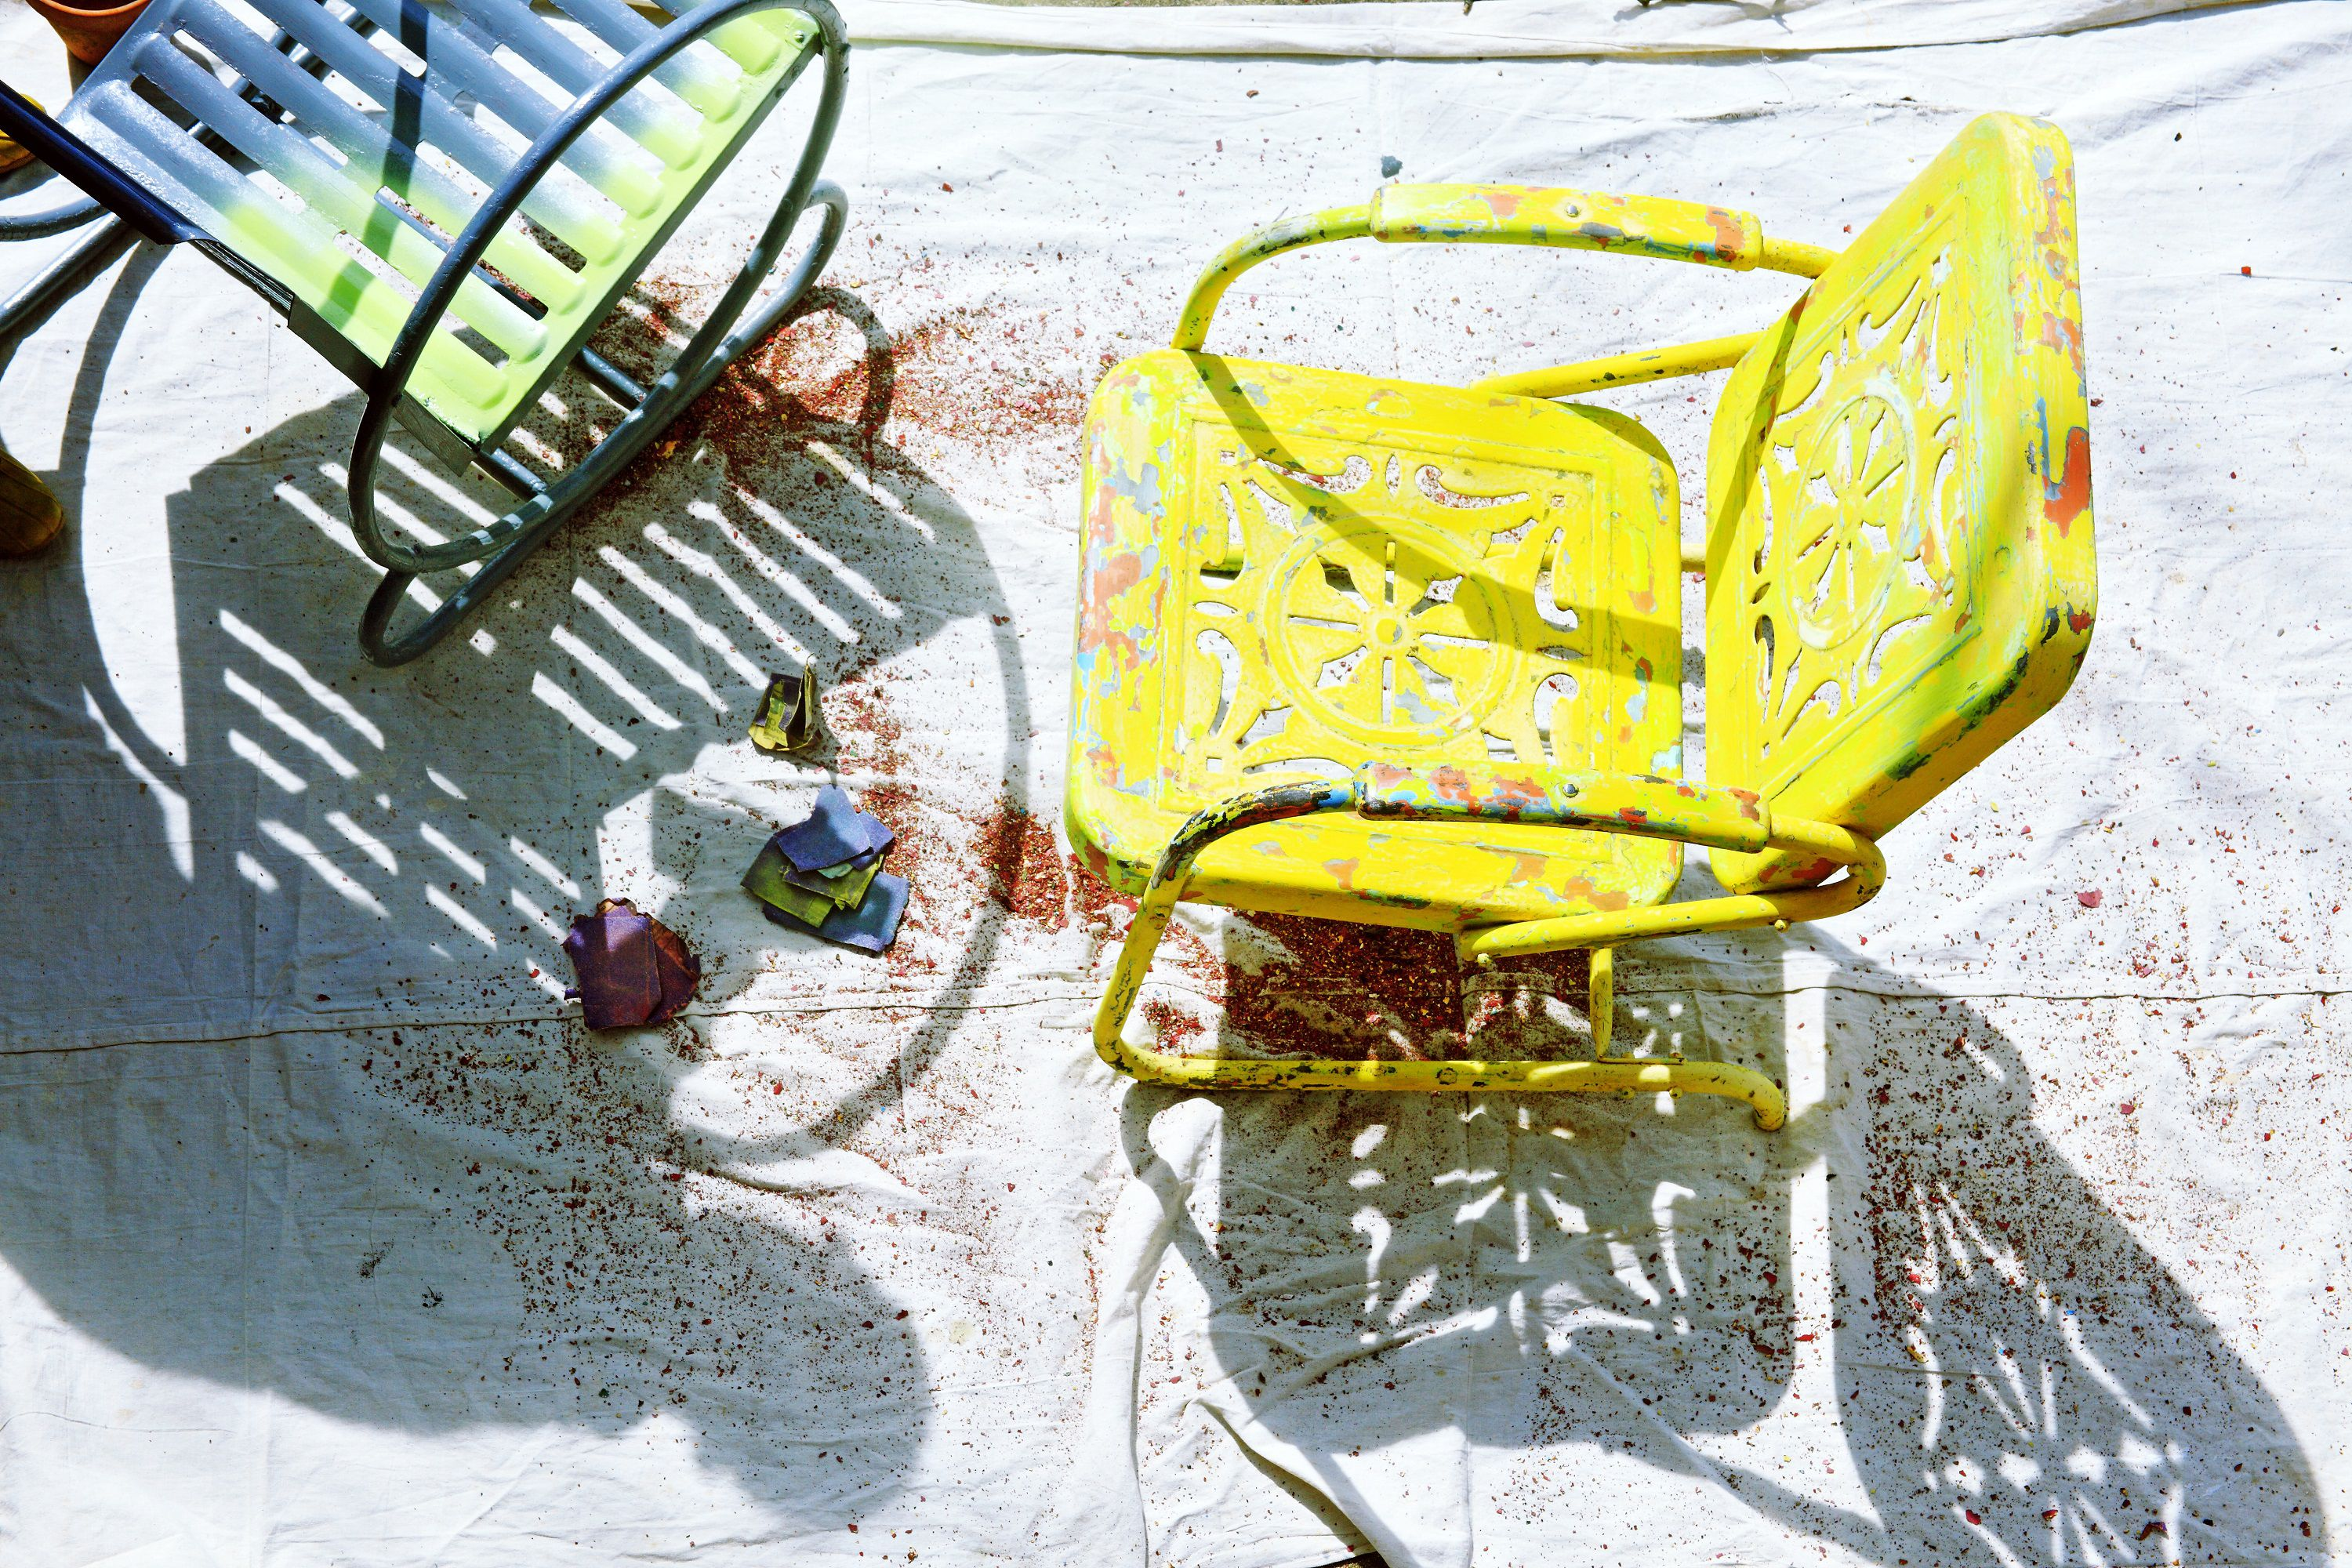 Removing Stains - Cleaning Brick Patios and Walls